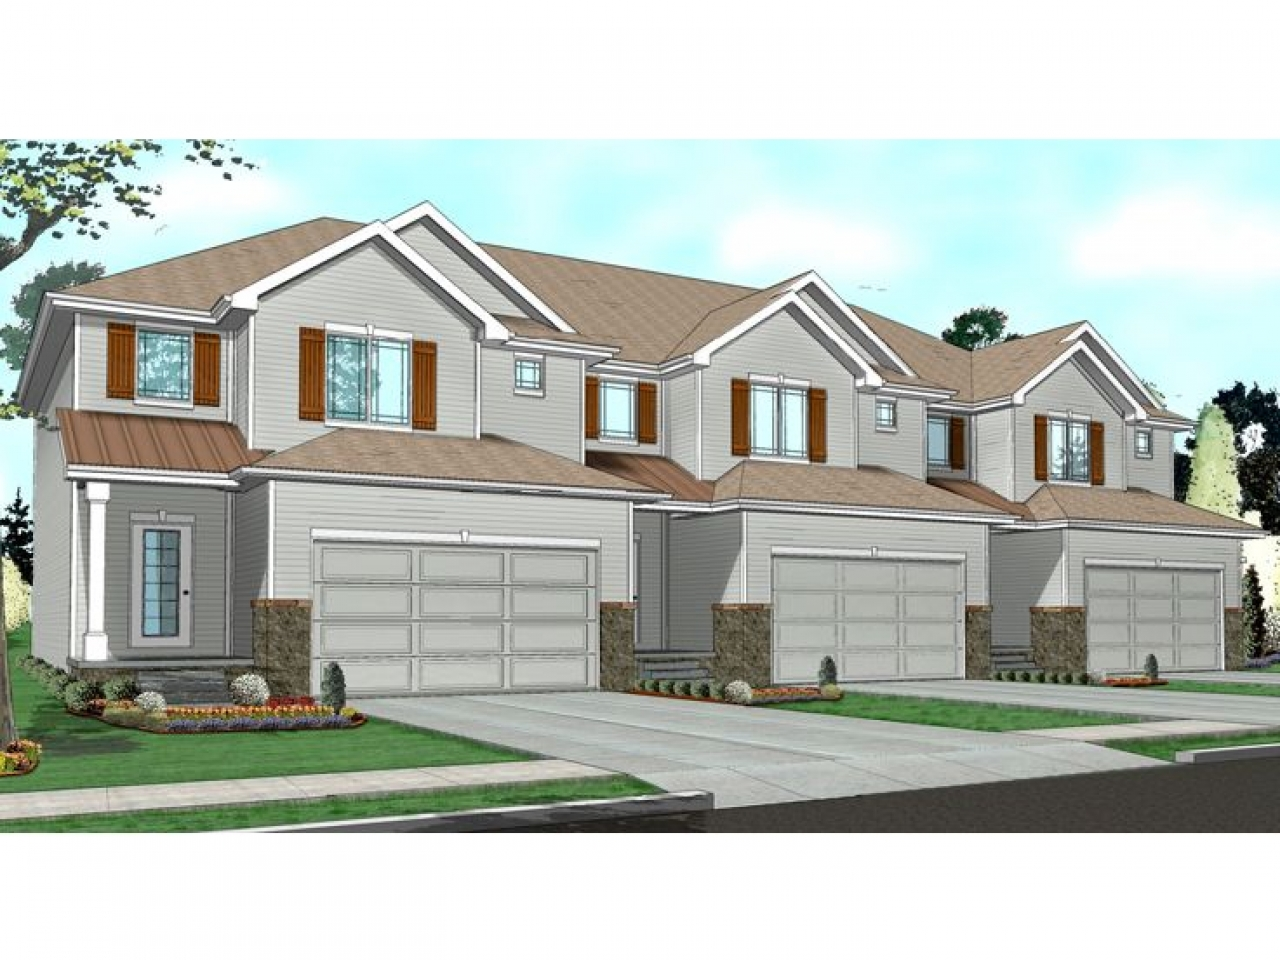 Townhouse with garage plans townhouse floor plans 1 story for 3 story townhomes